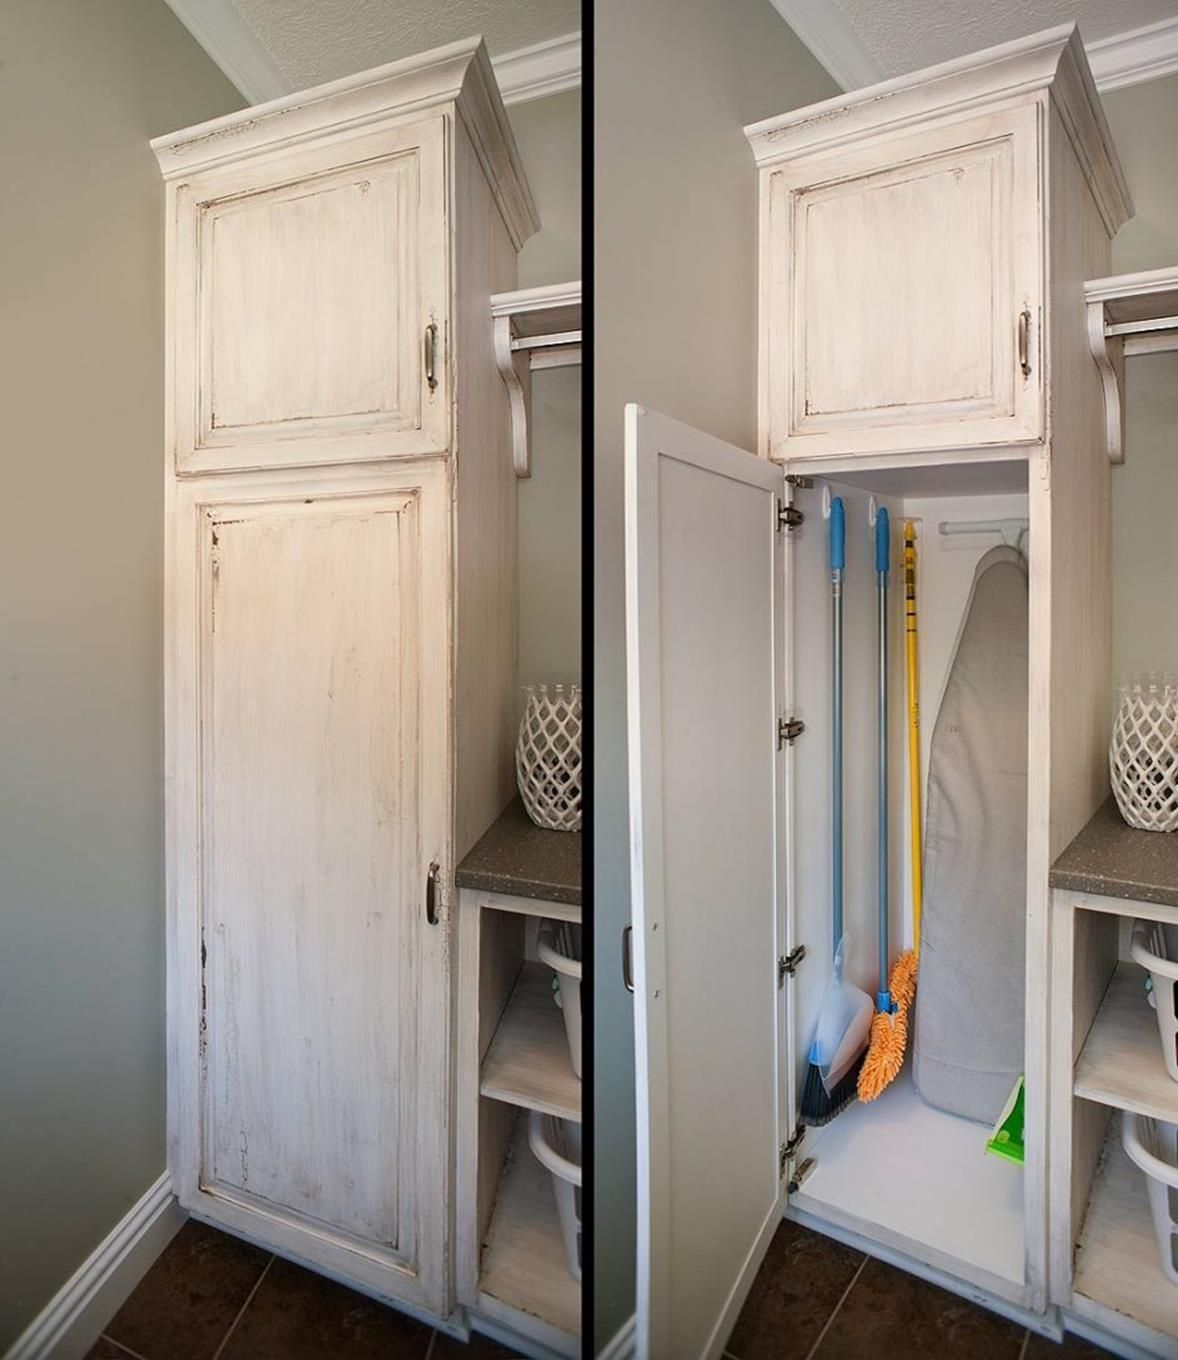 Best Cheap Ikea Cabinets Laundry Room Storage Ideas 5 Laundry Room Storage Laundry Cabinets Room Storage Diy